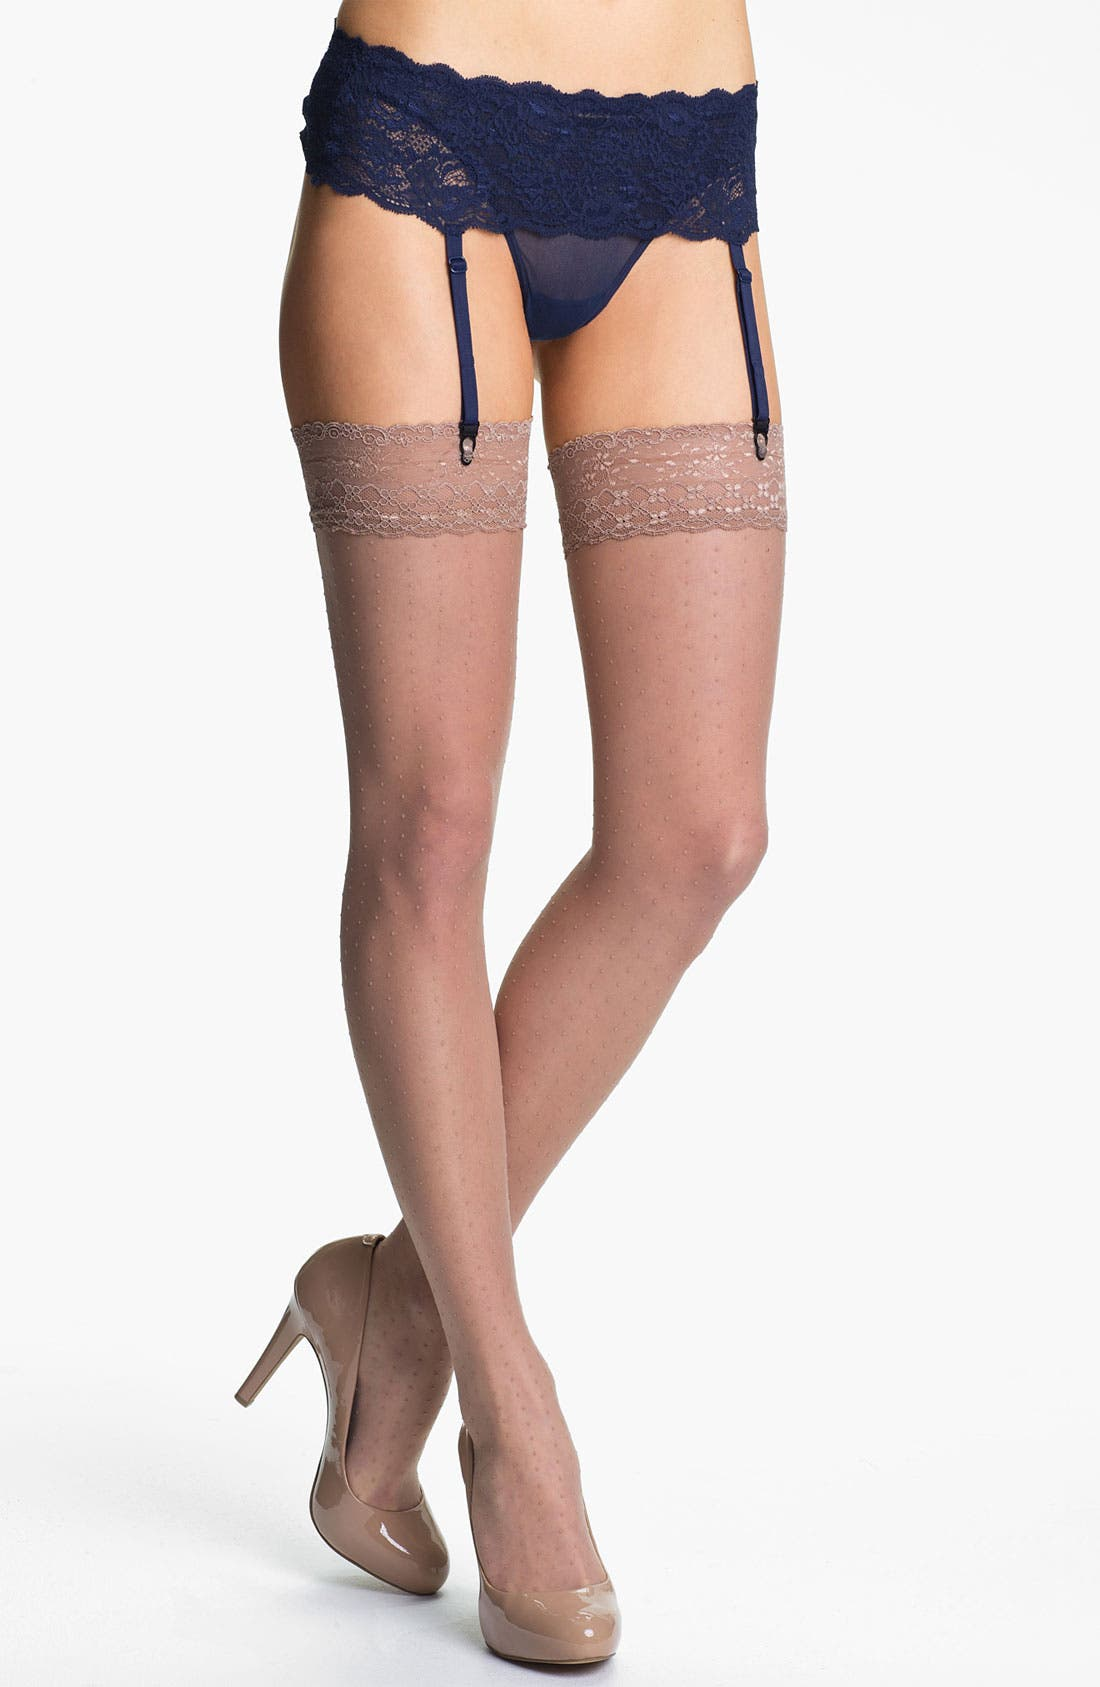 Main Image - Oroblu 'Bas Adelle' Thigh High Stockings